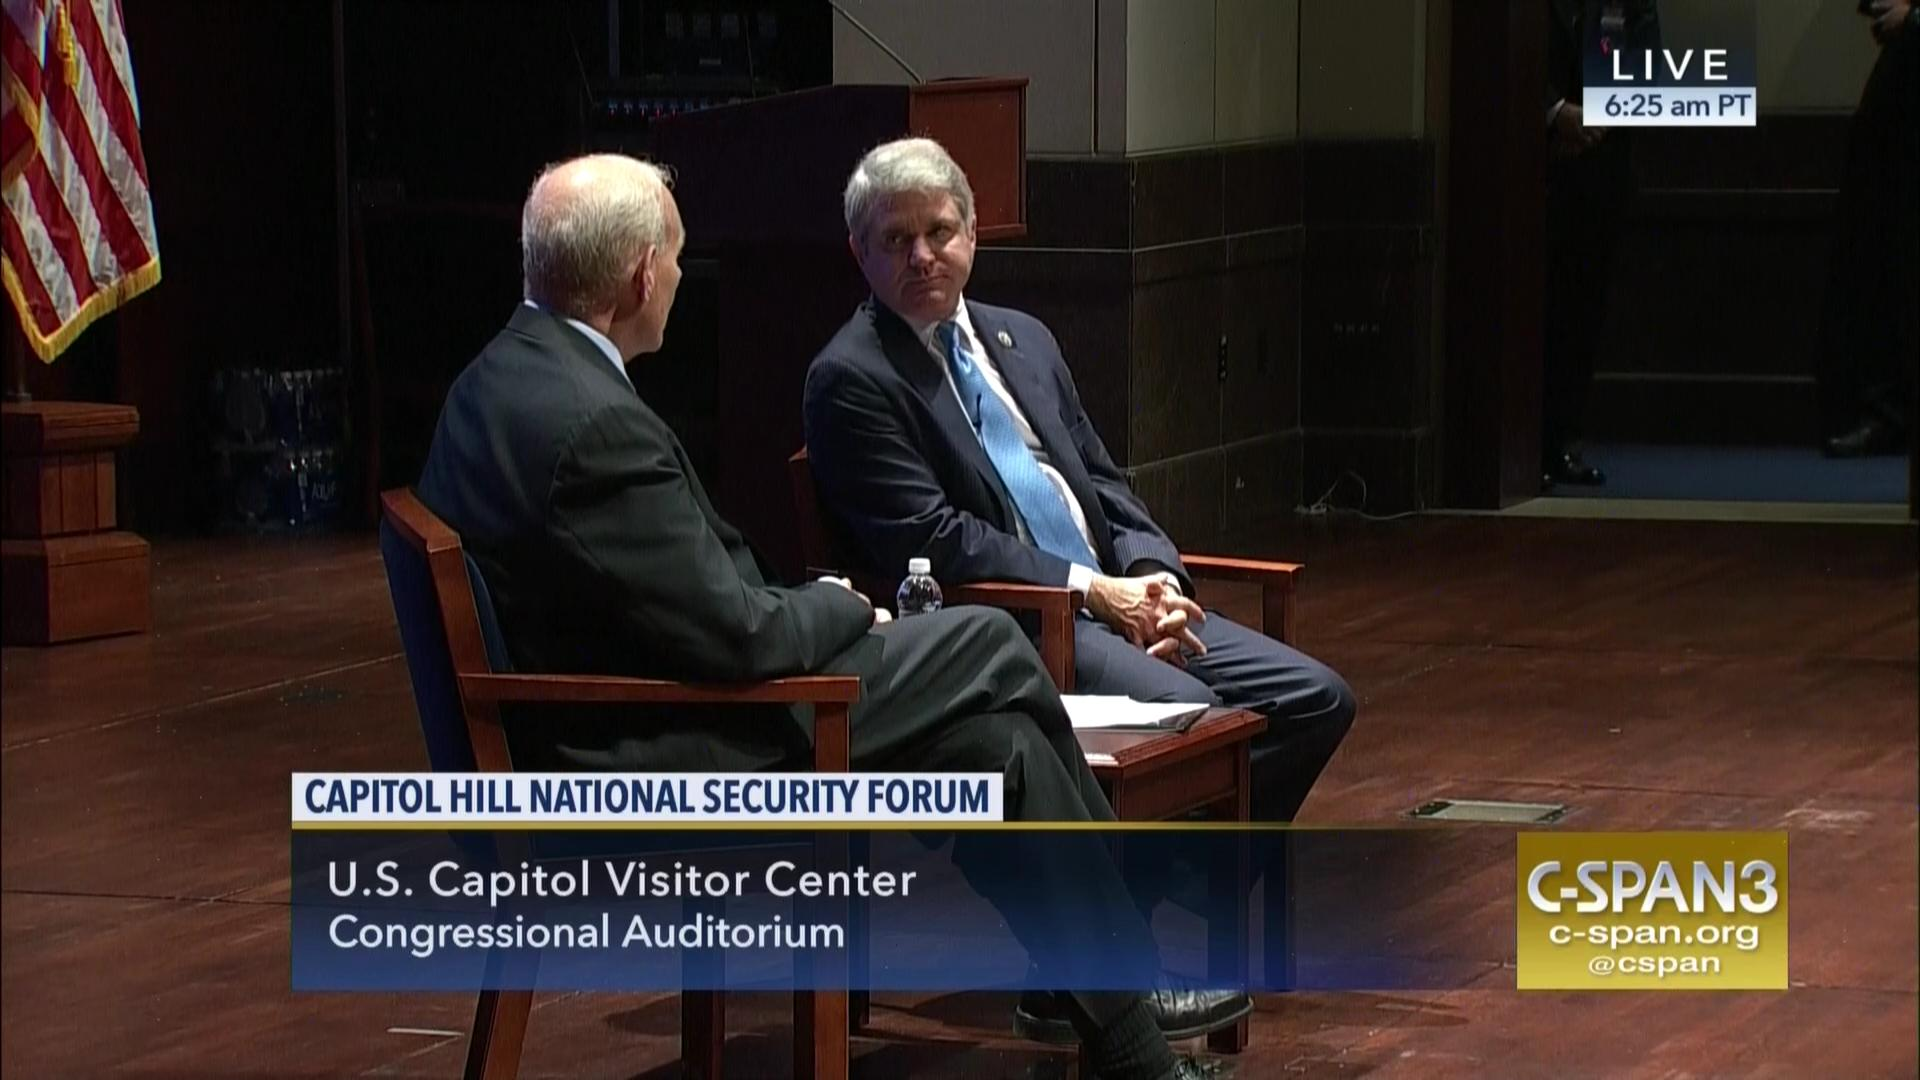 National Security Forum, Representative McCaul and Secretary Kelly